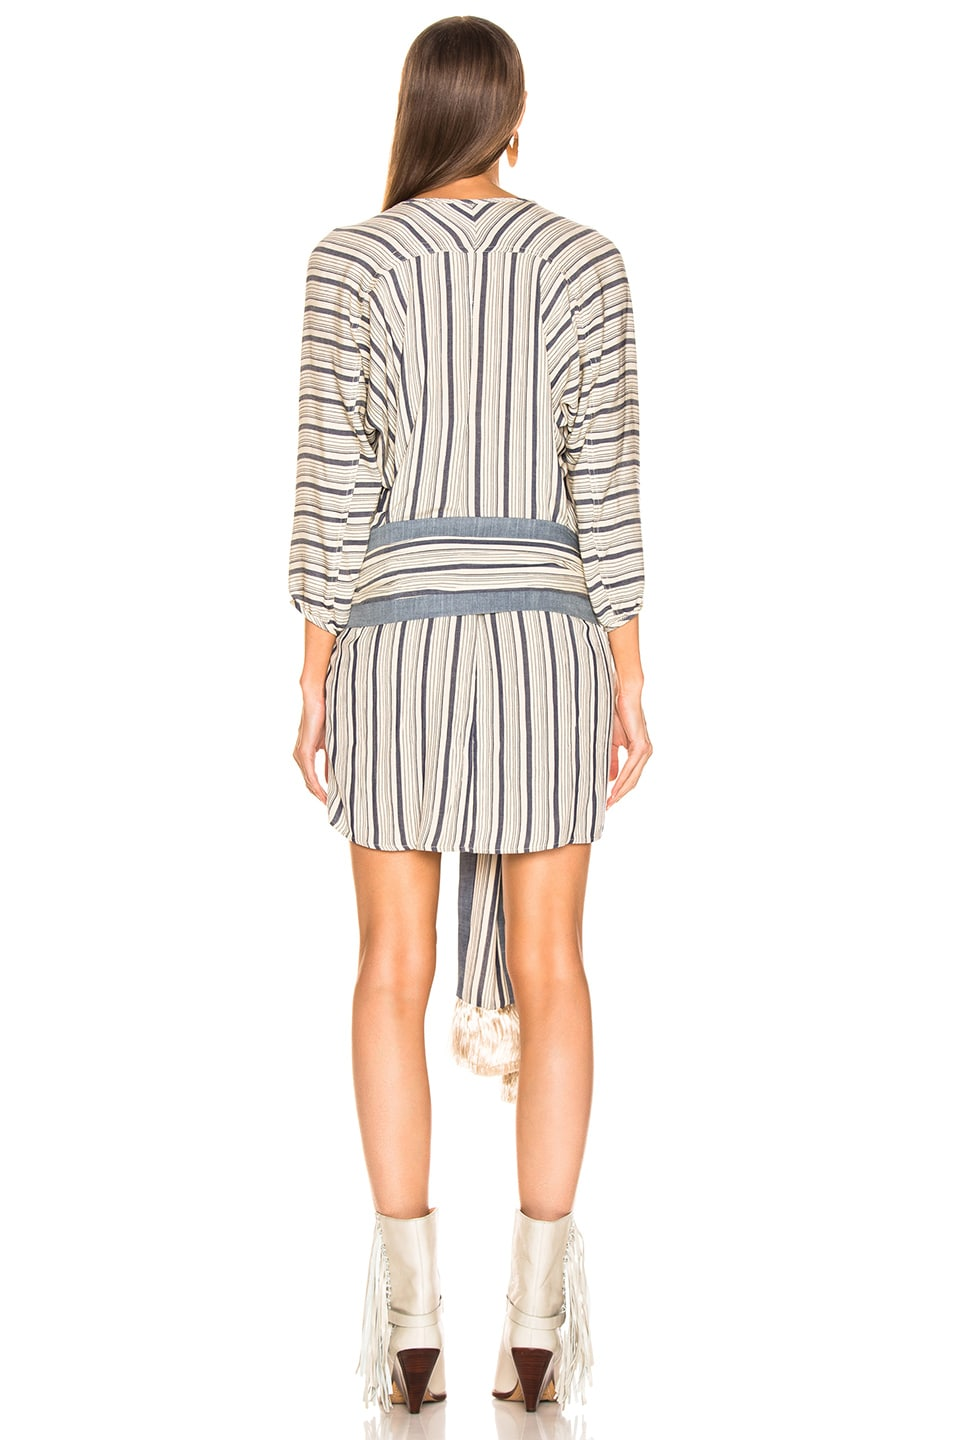 Image 3 of LAUREL & MULHOLLAND Blue Bayou Tunic Dress in Oatmeal & Navy Stripes